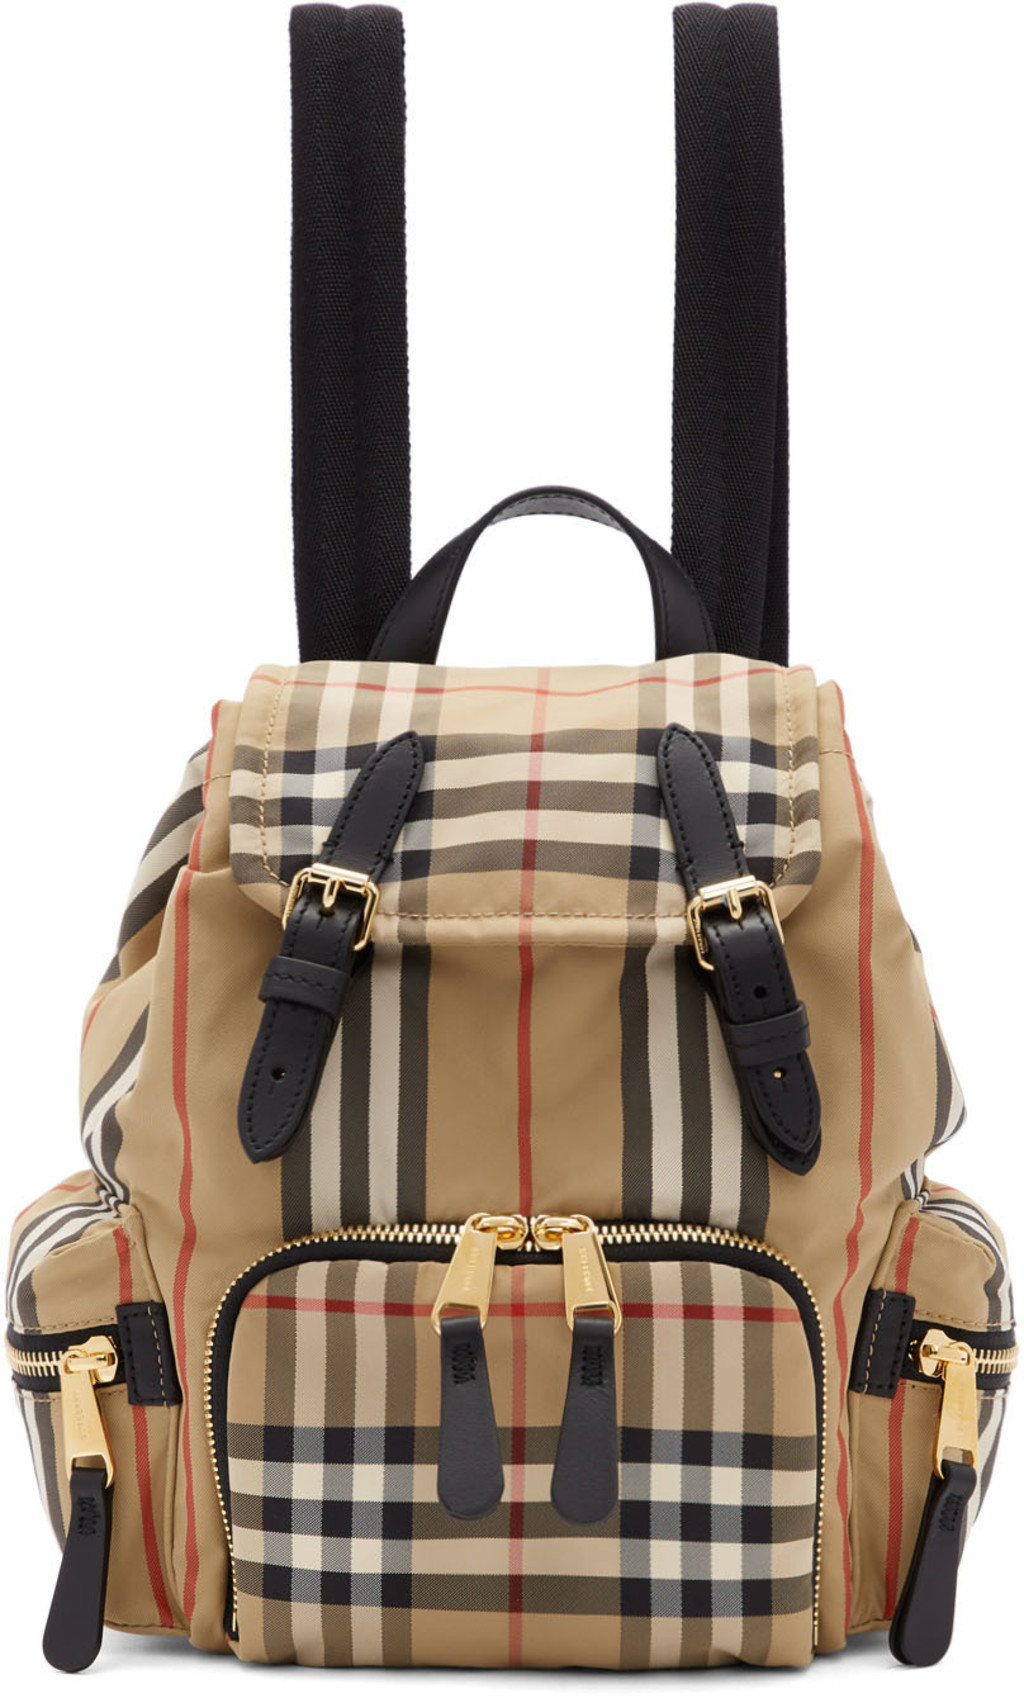 Sac Check Dos À Small Heritage Beige I67yvgYbf